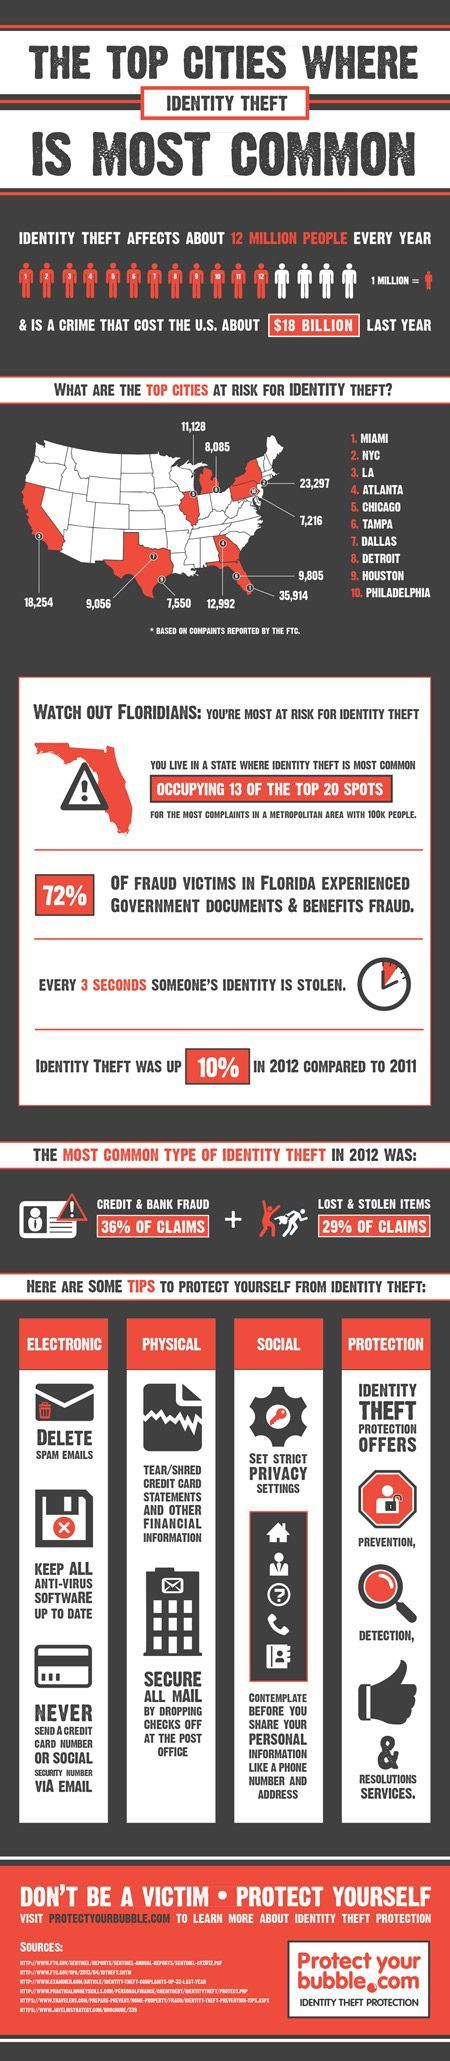 #Infographic: Where Are You Most at Risk for Identity Theft? (in the USA) #TheFraudTube